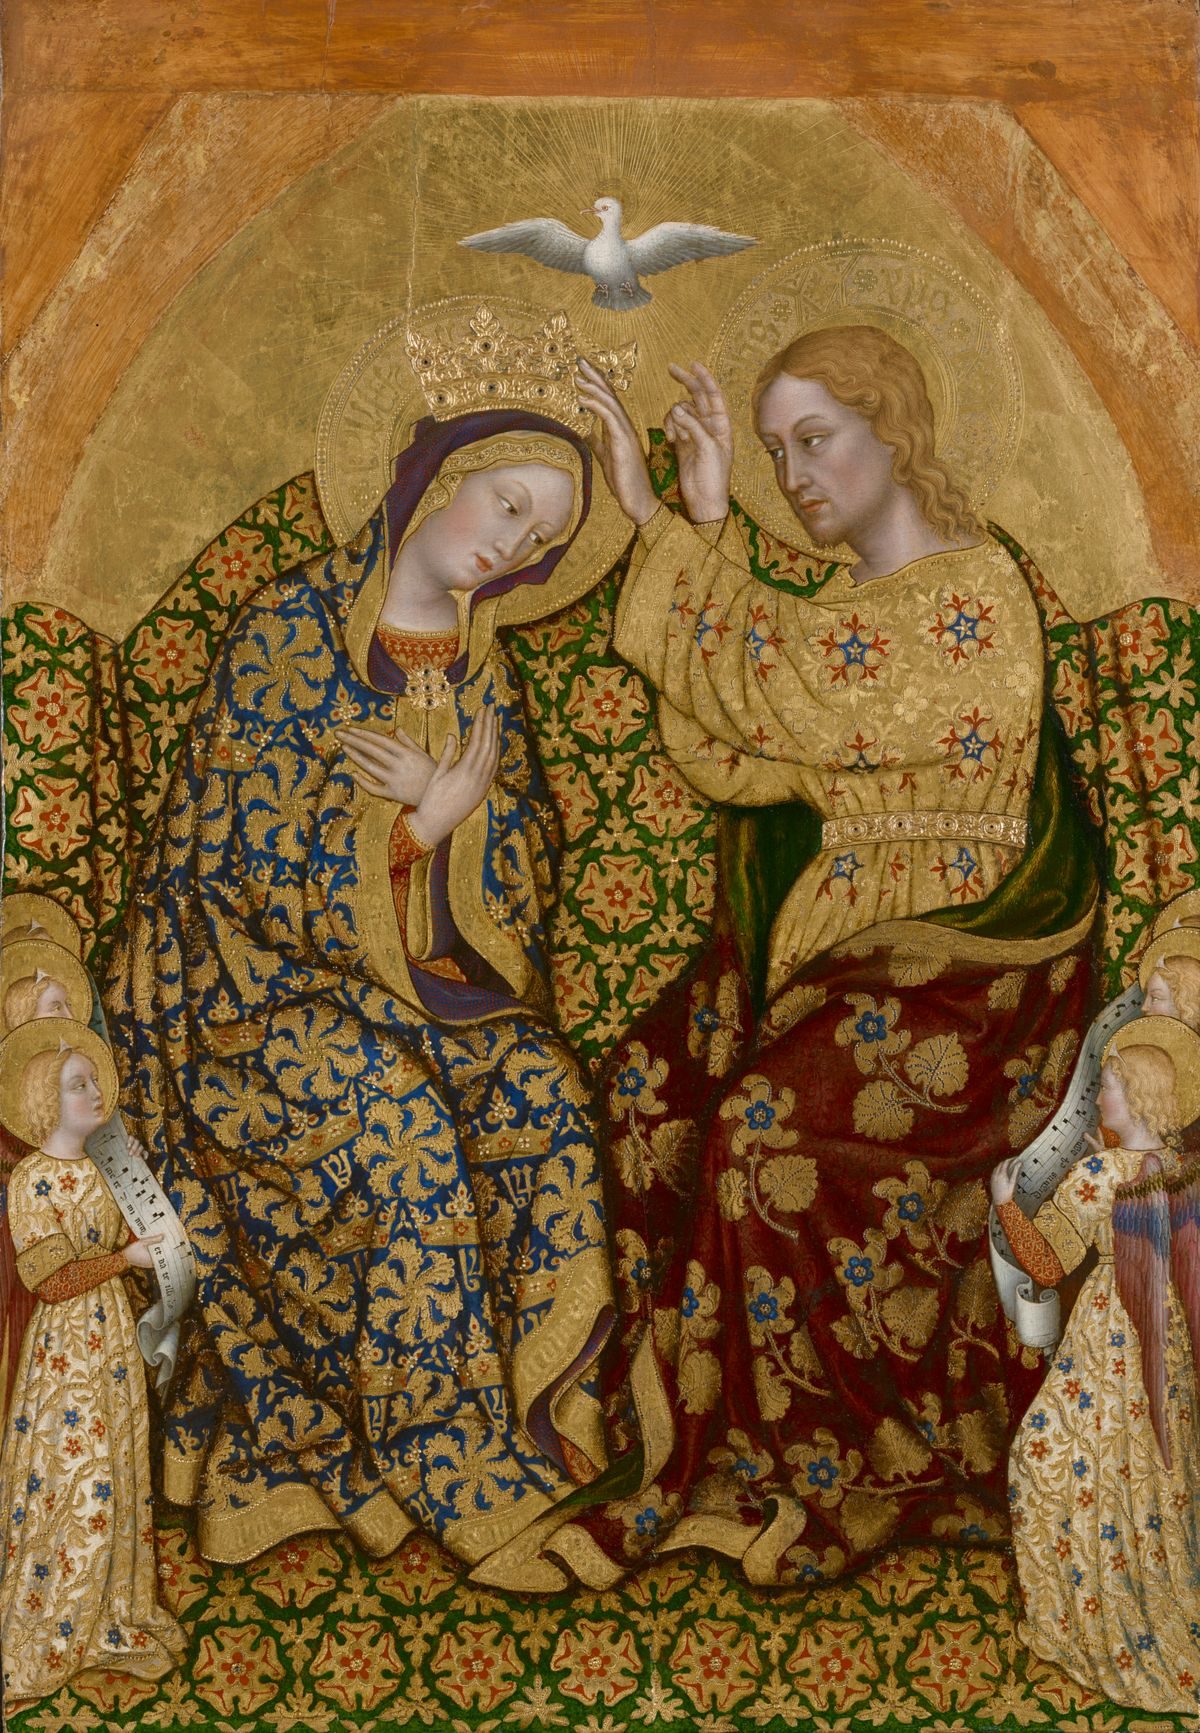 Coronation of the Virgin by Gentile da Fabriano (1420) - Public Domain Catholic Painting